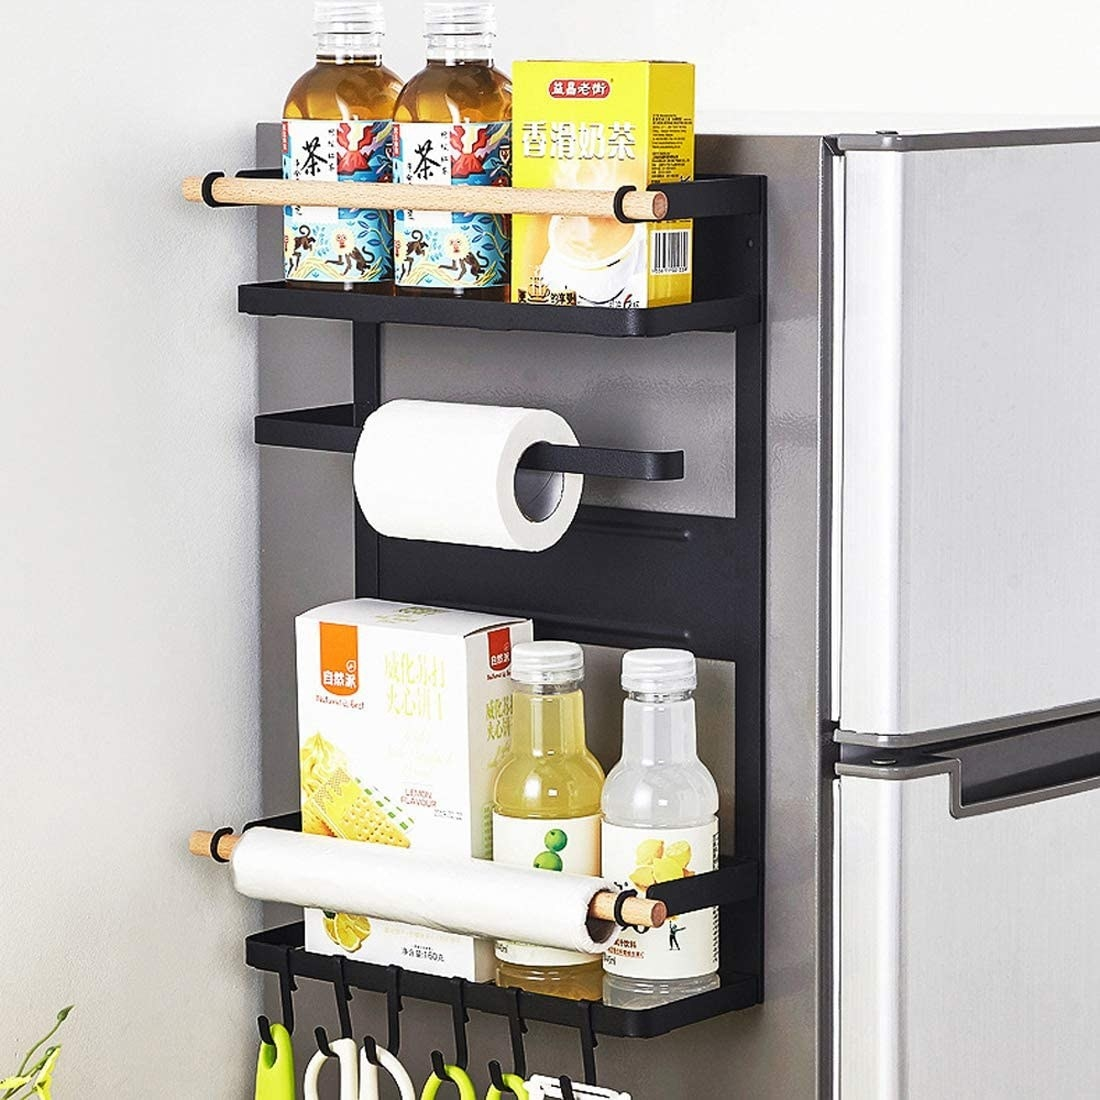 A product shot of the organizer with hooks holding scissors and utensils, three poles for paper towels, and two shelves for storing boxes and bottles of food